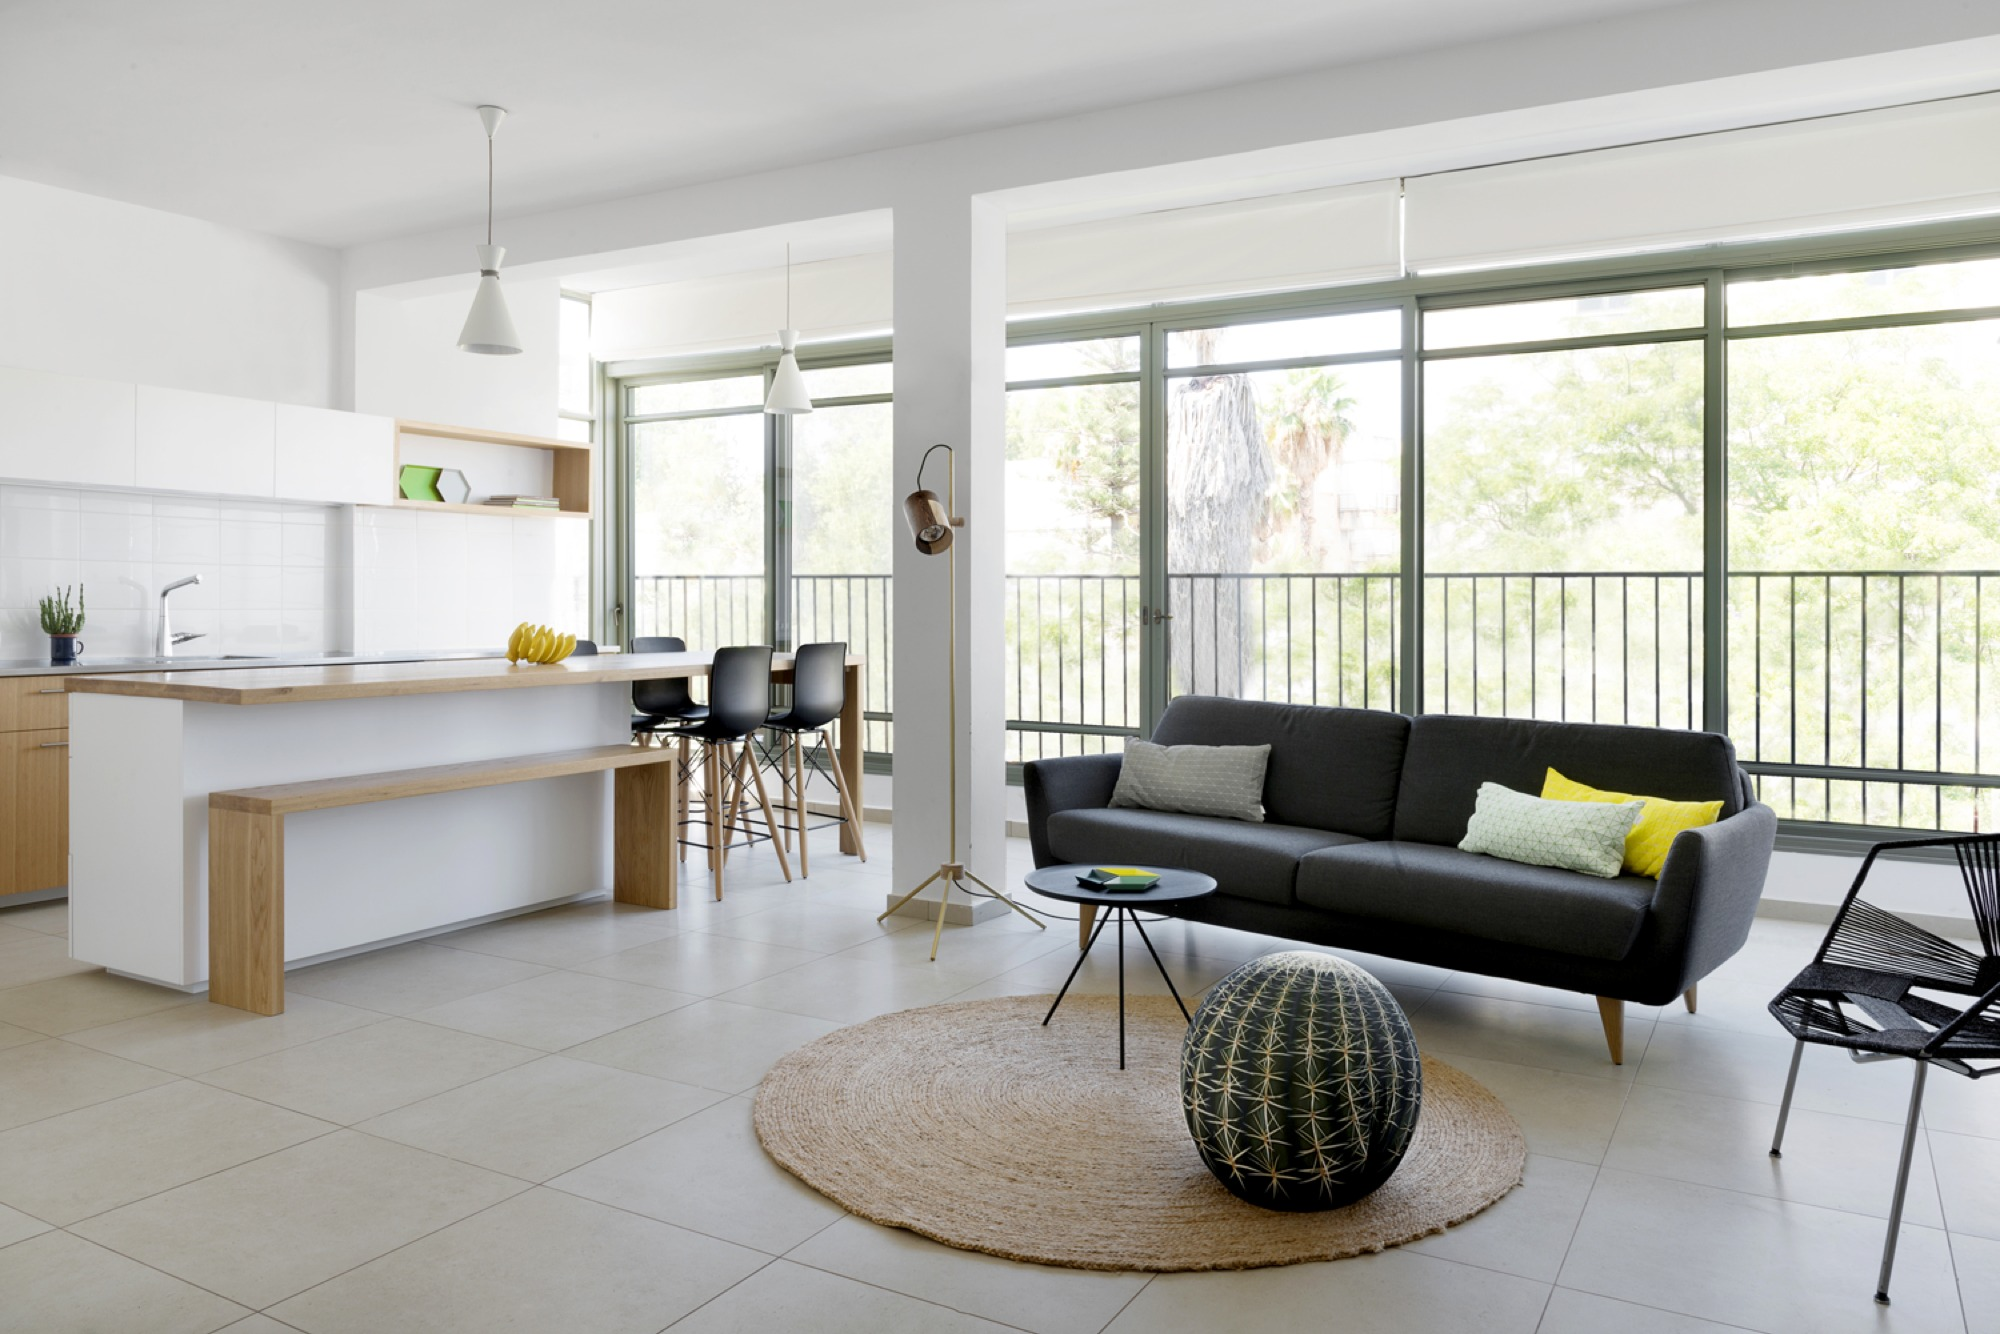 Gallery of apartment in ramat gan itai palti 6 - A room apartment that serves two purposes design ...